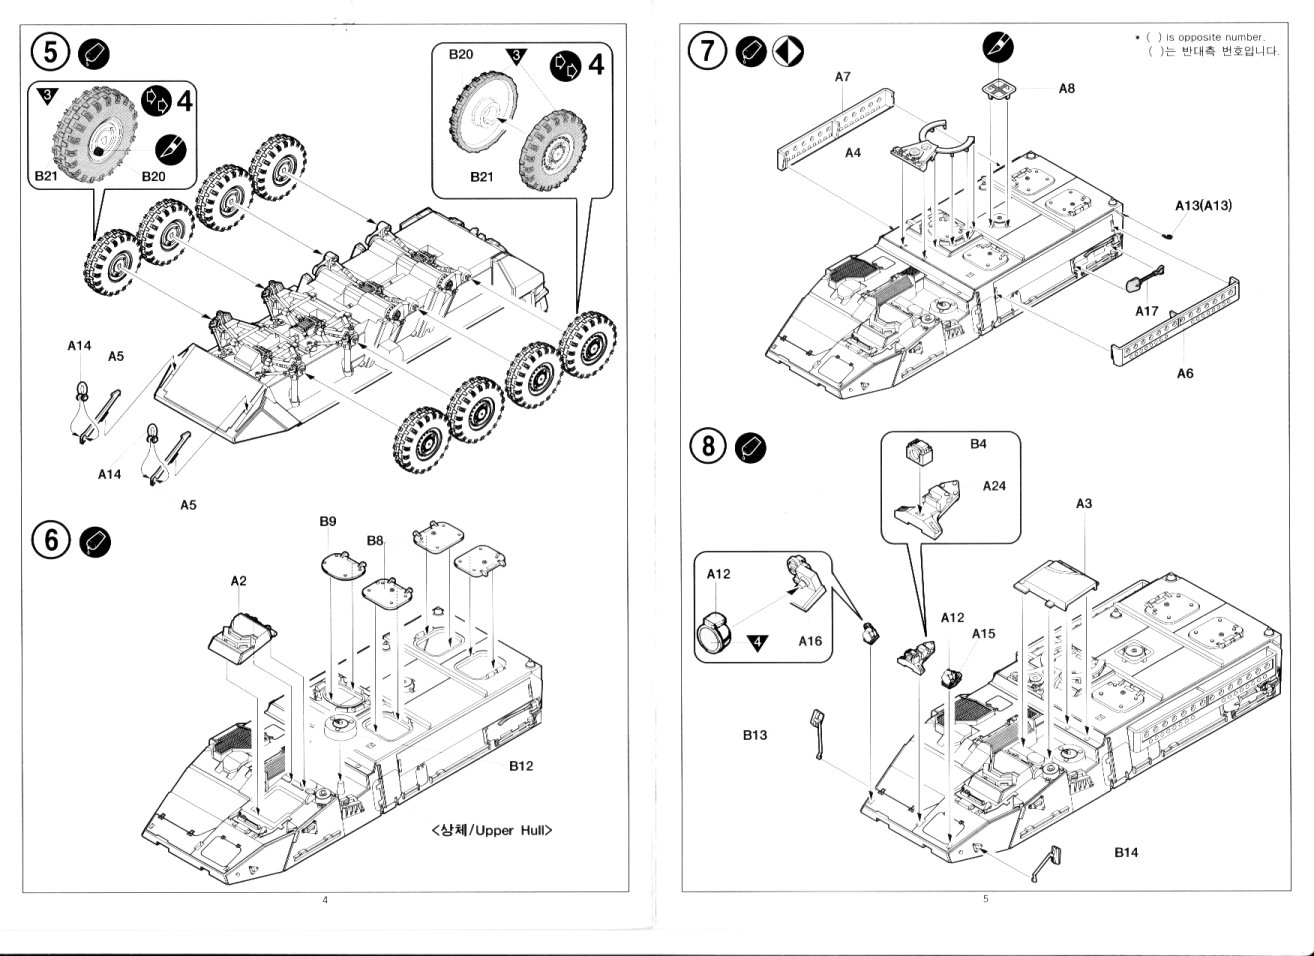 Academy, M1126 Stryker, Kit No. 13411